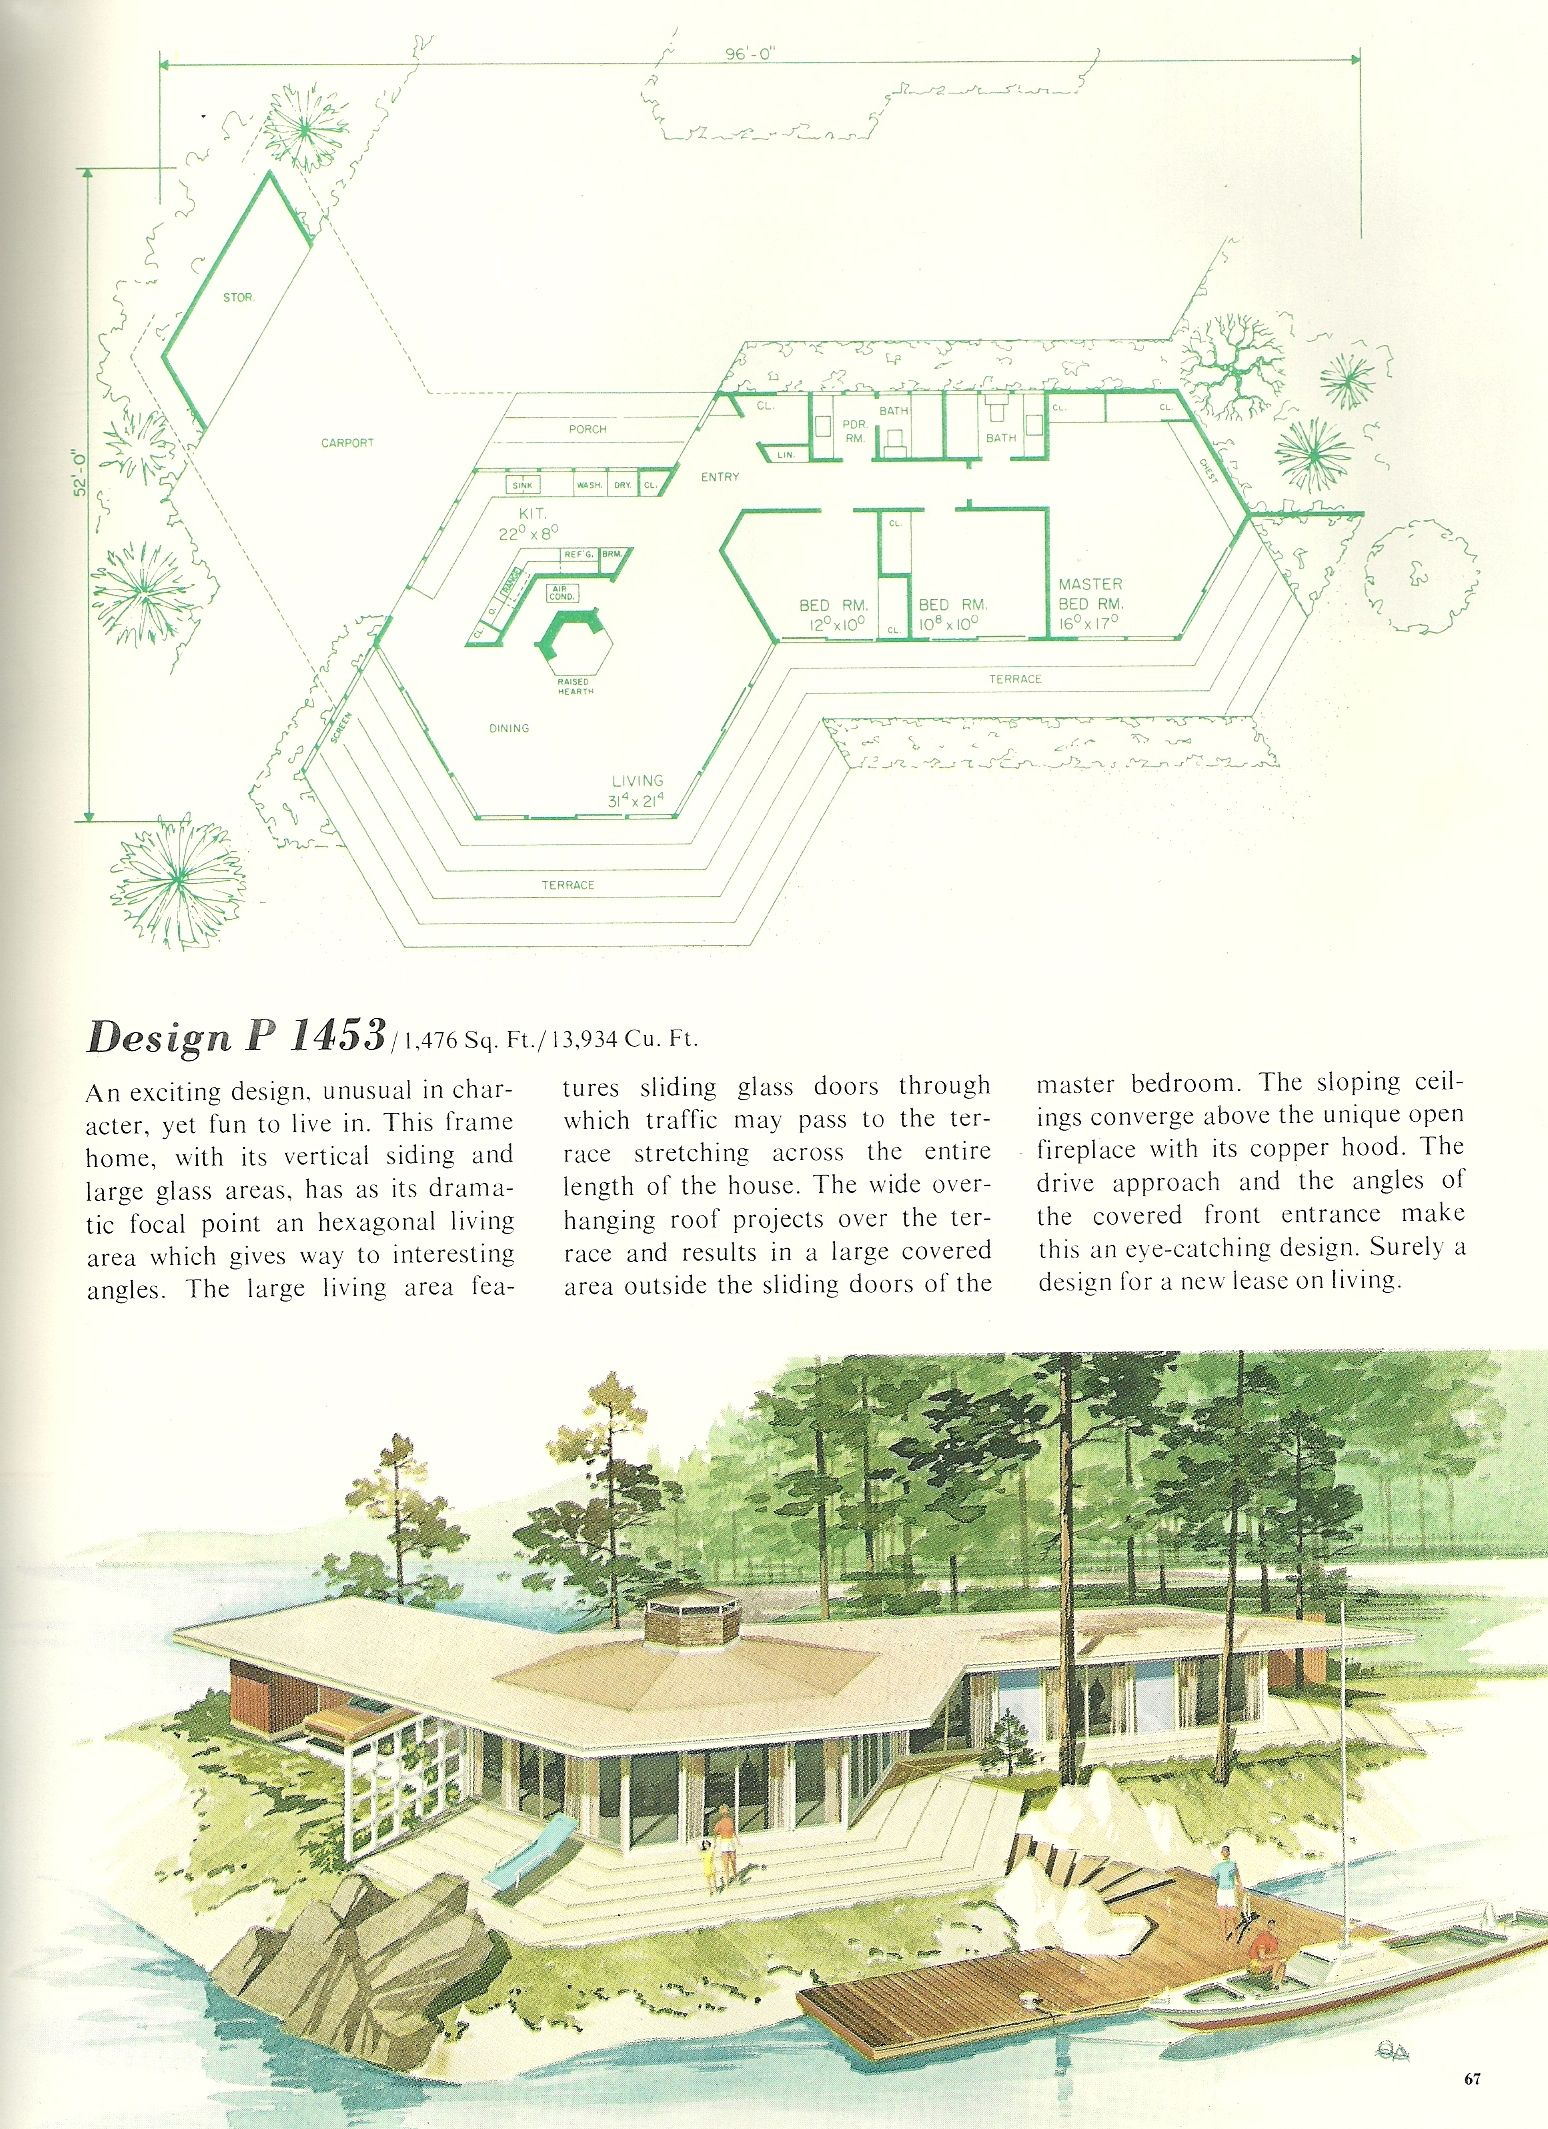 Vintage Vacation Home Plans 1453 Vintage House Plans Vacation House Plans Mid Century House